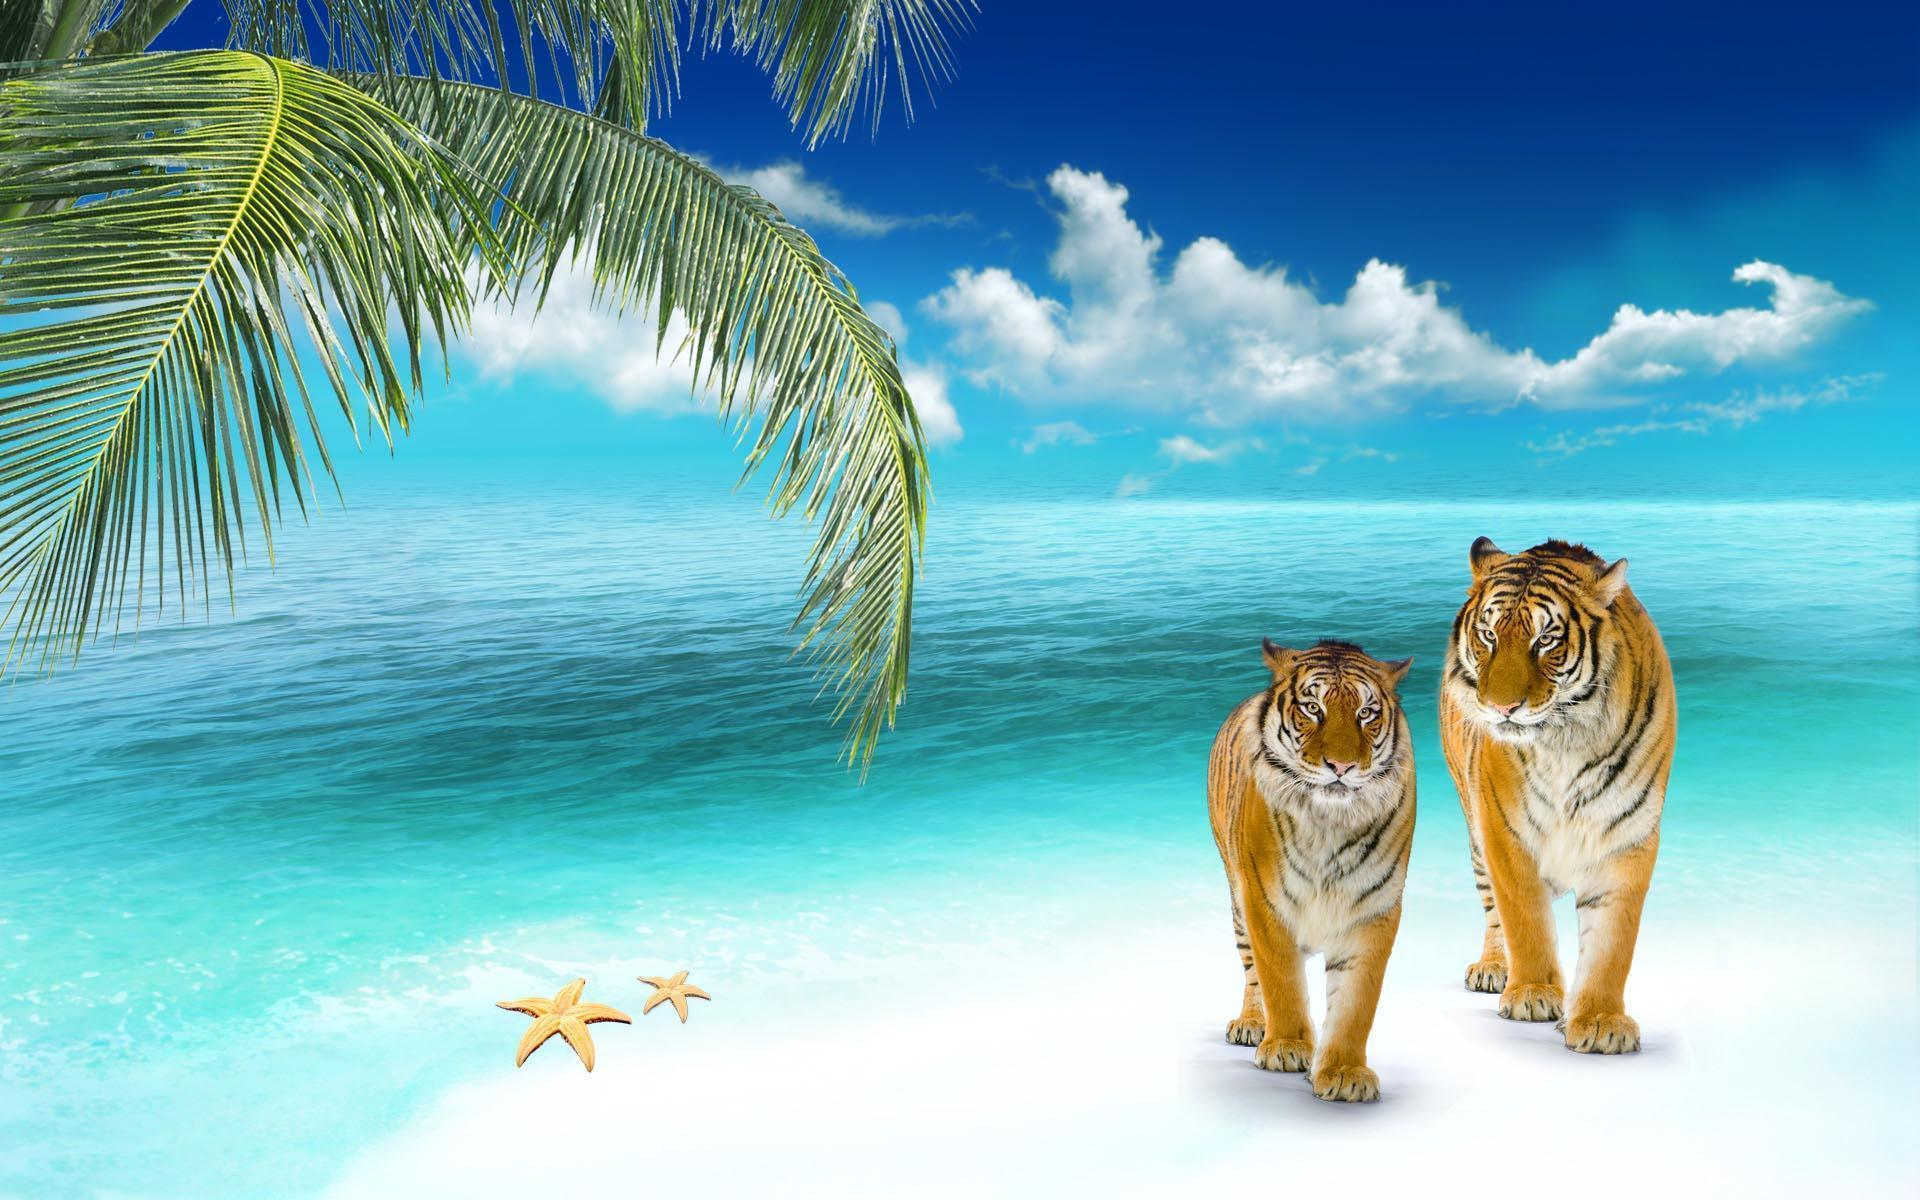 3D Beach Wallpapers 1920x1200